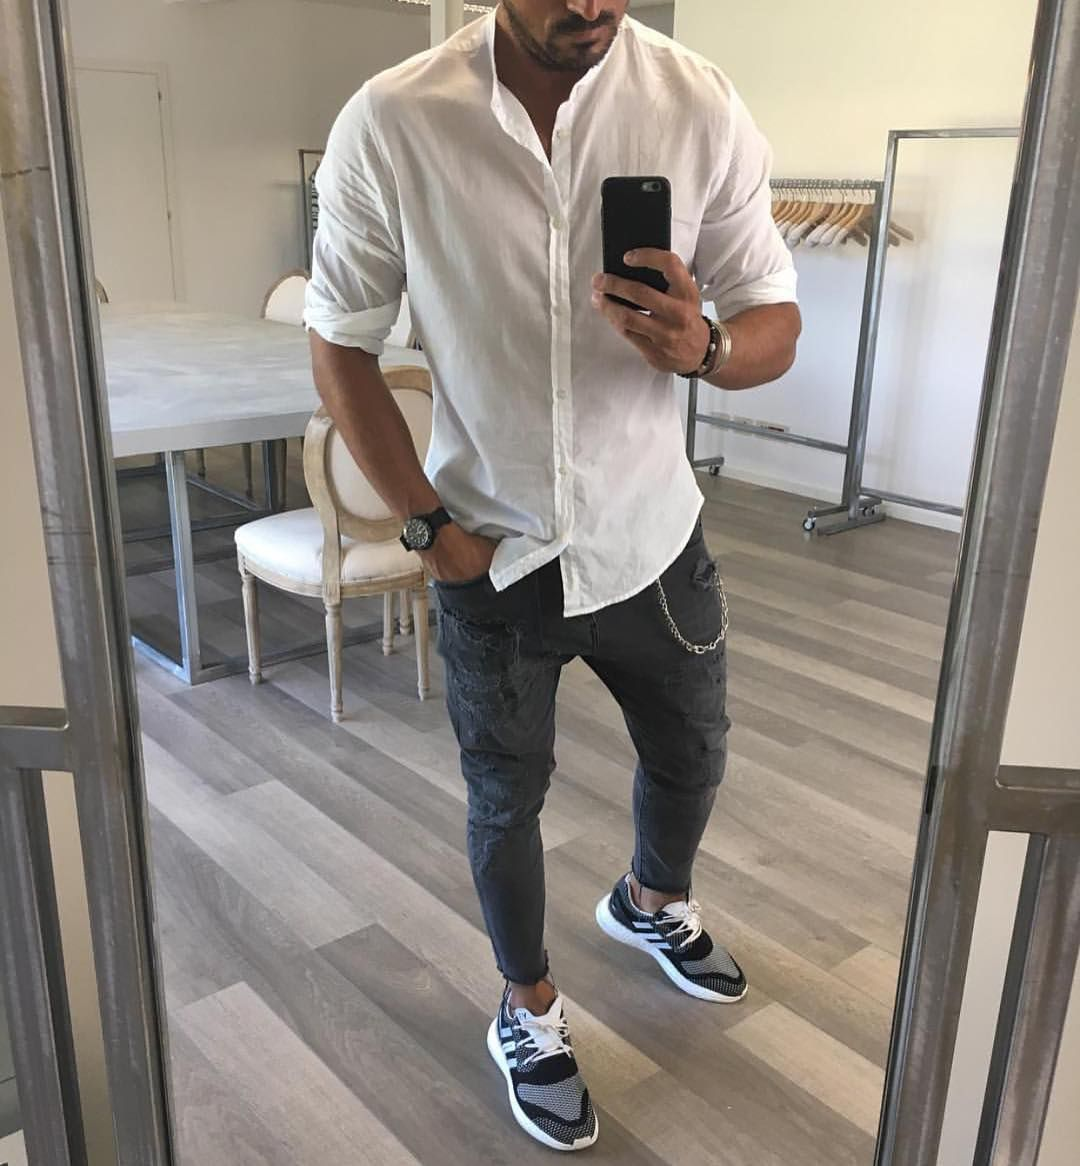 #mandarincollar white shirt distressed jeans and sneakers by @vincenzoragnacci [ http://ift.tt/1f8LY65 ]